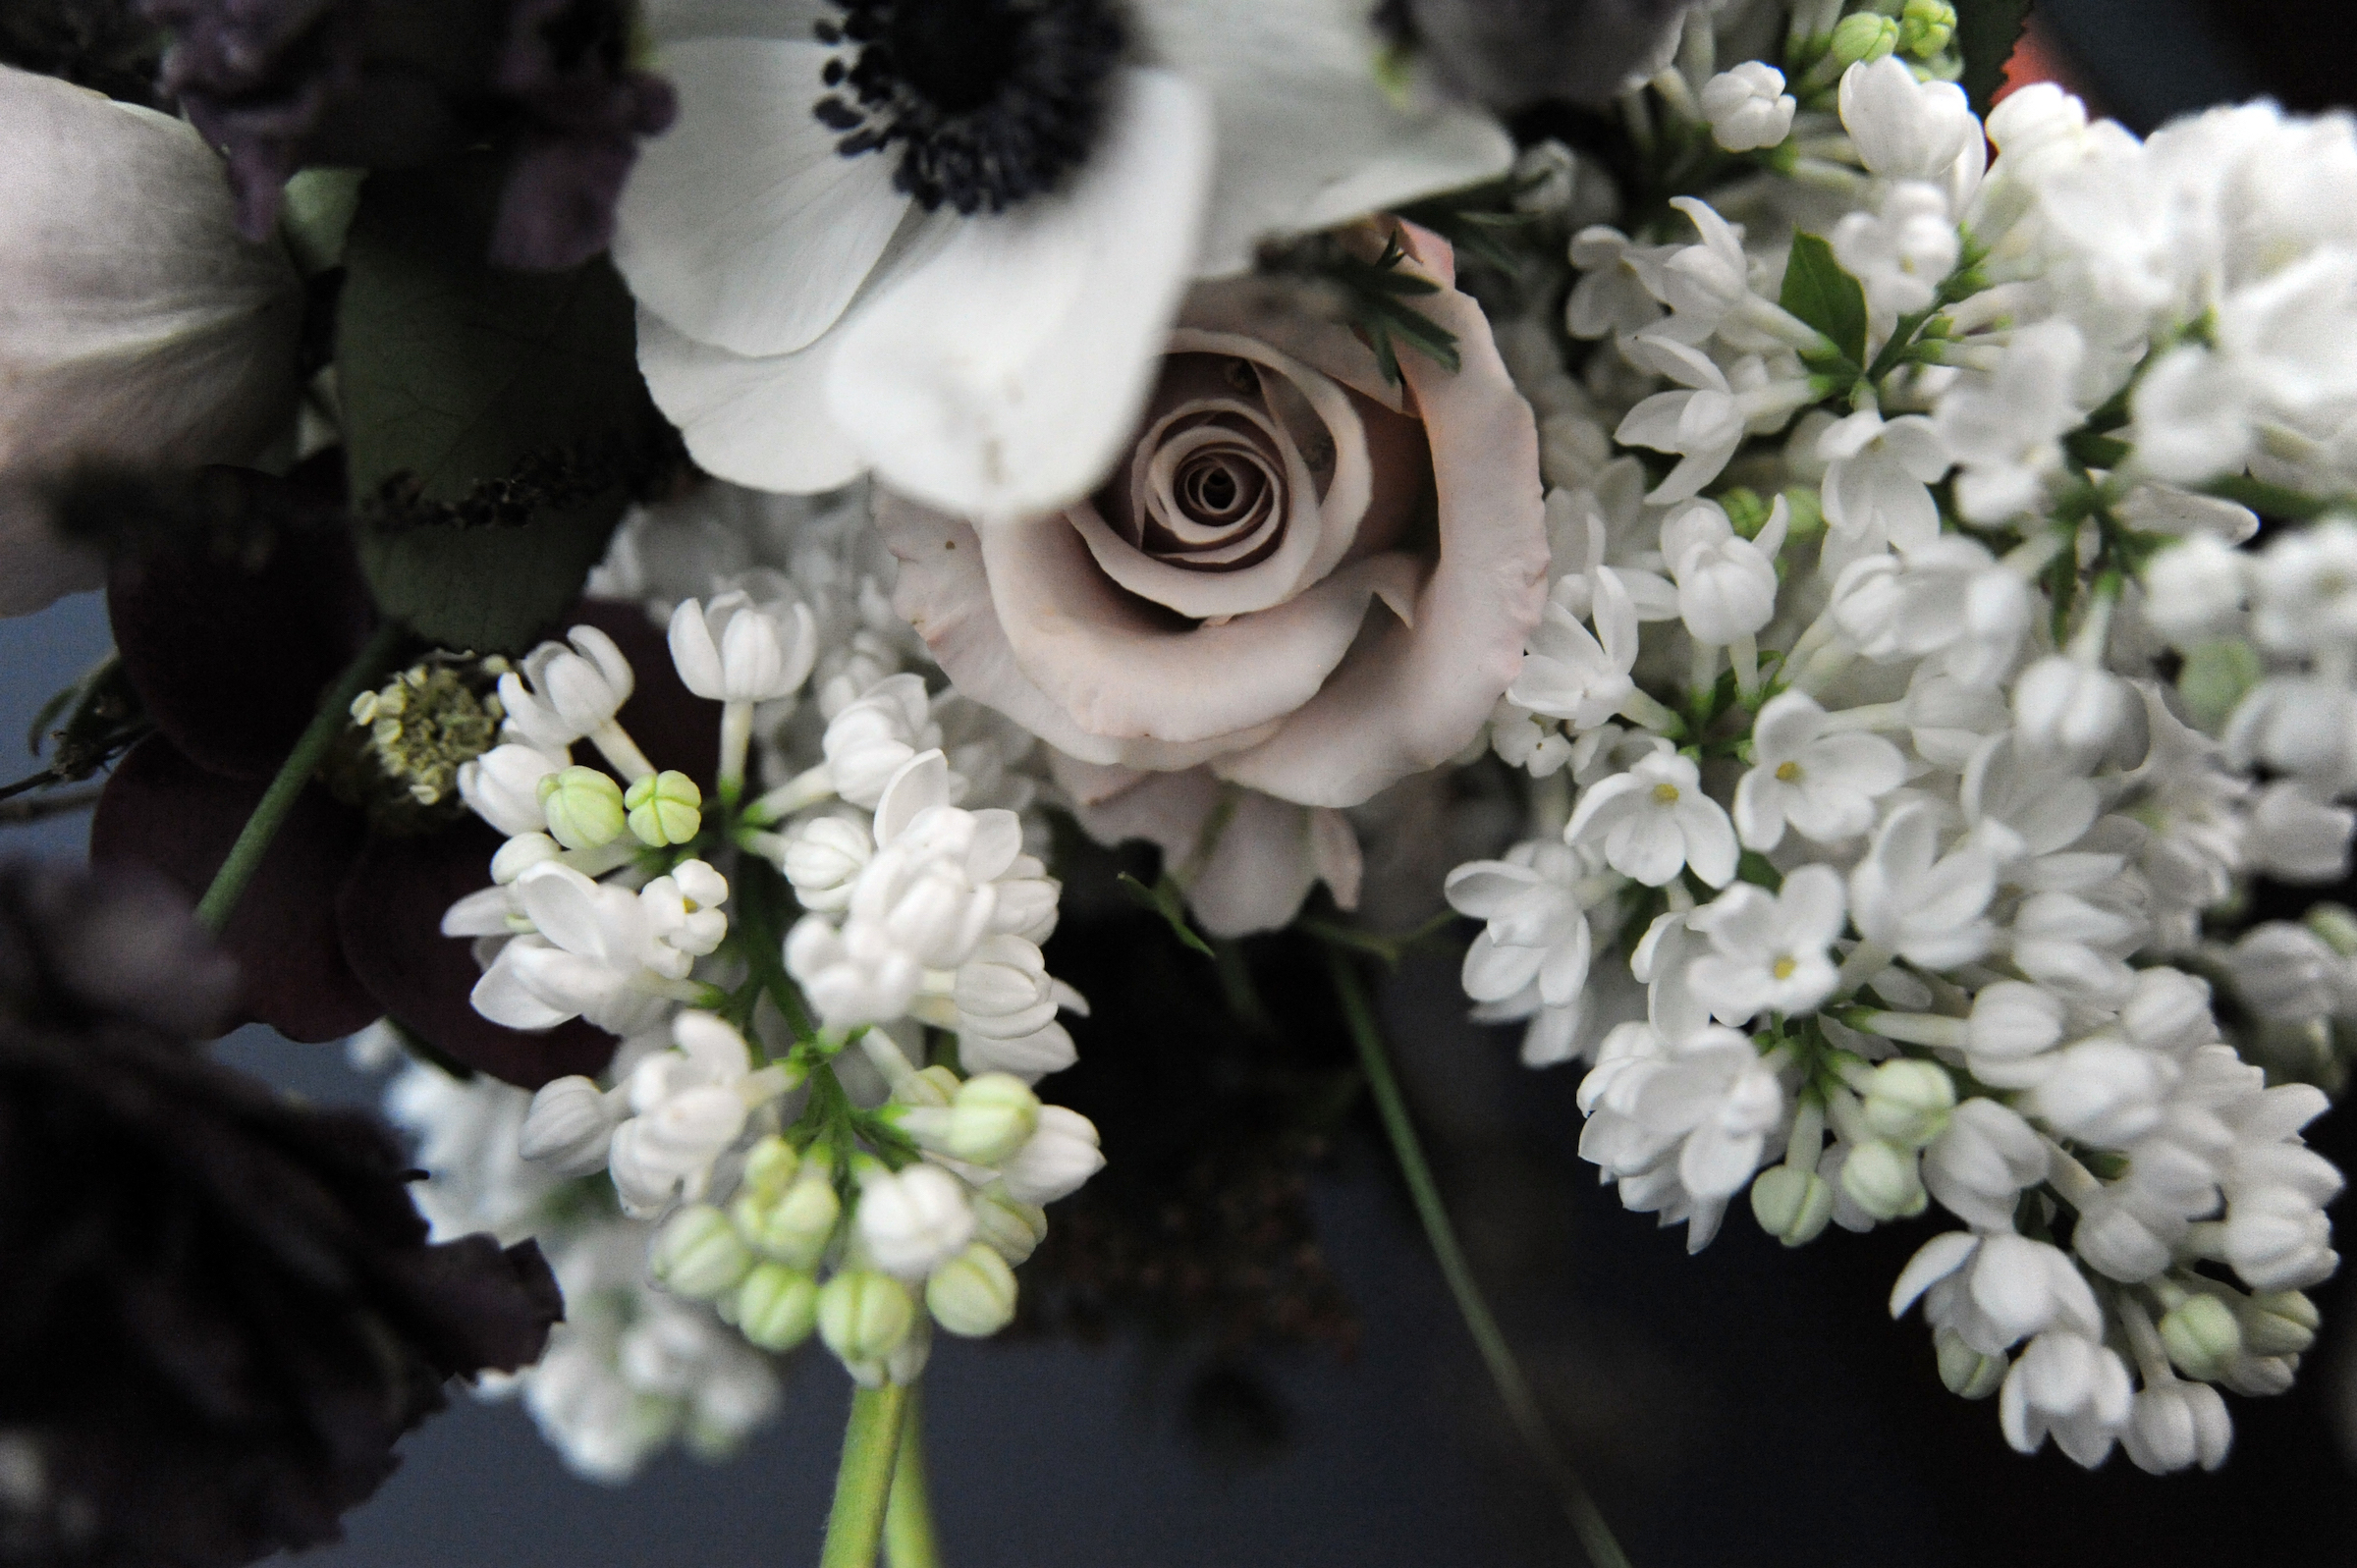 A floral arrangement of winter flowers